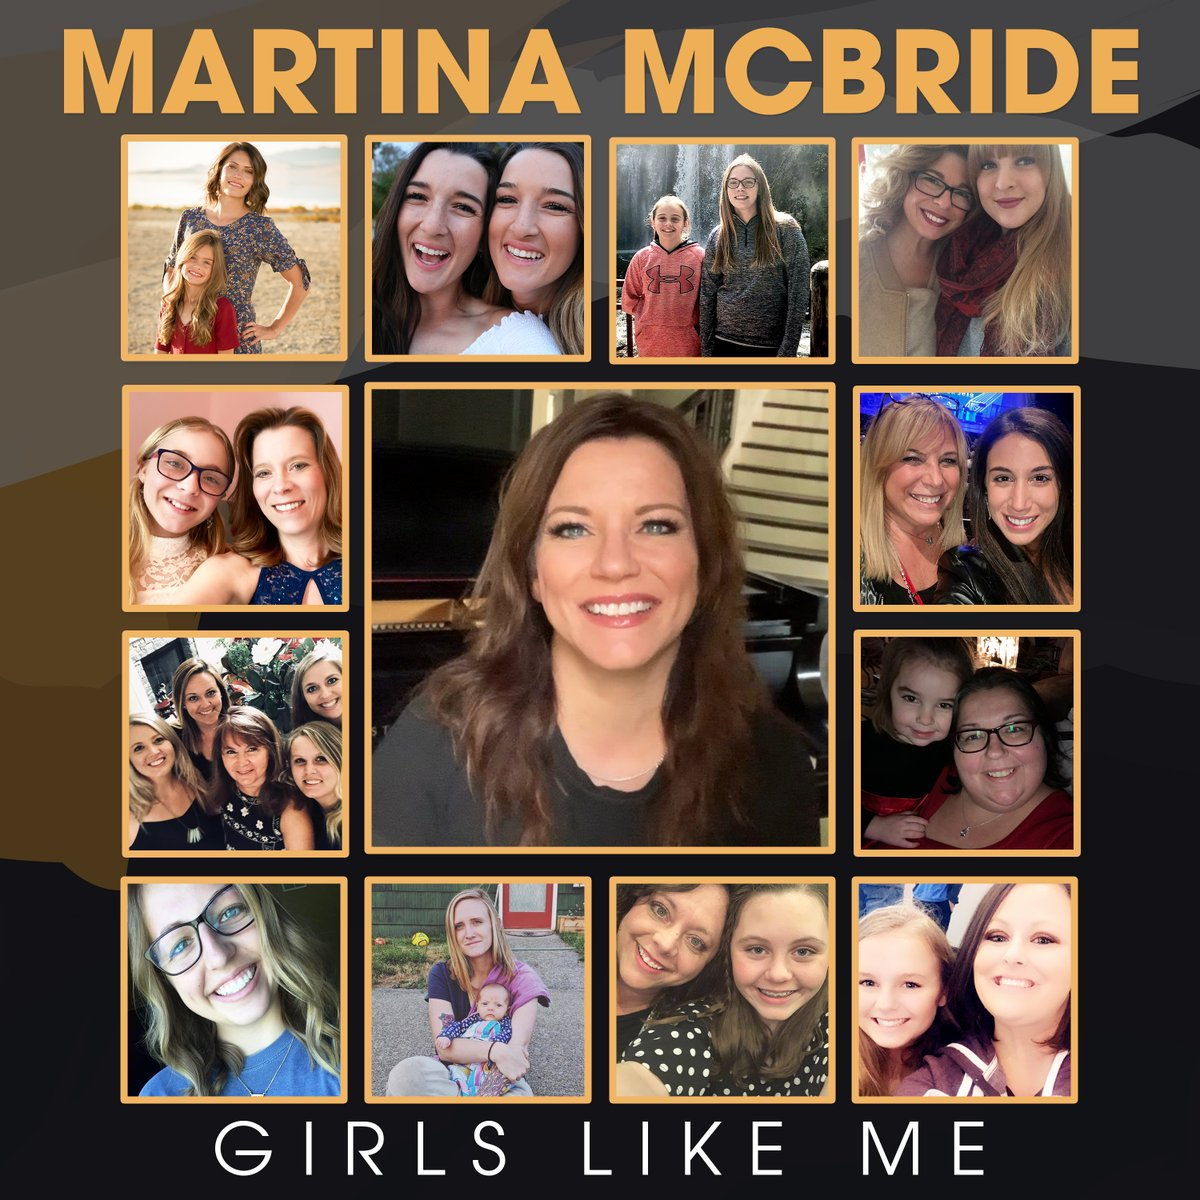 Here's the new cover of #GirlsLikeMe. We are in week 2 of our selfie single covers! I'd love to see you with me on next week's cover, so remember to submit yours using the link below. Do you see yourself in this week's cover?? Let me know if you do! smarturl.it/GirlsLikeMe_Su…